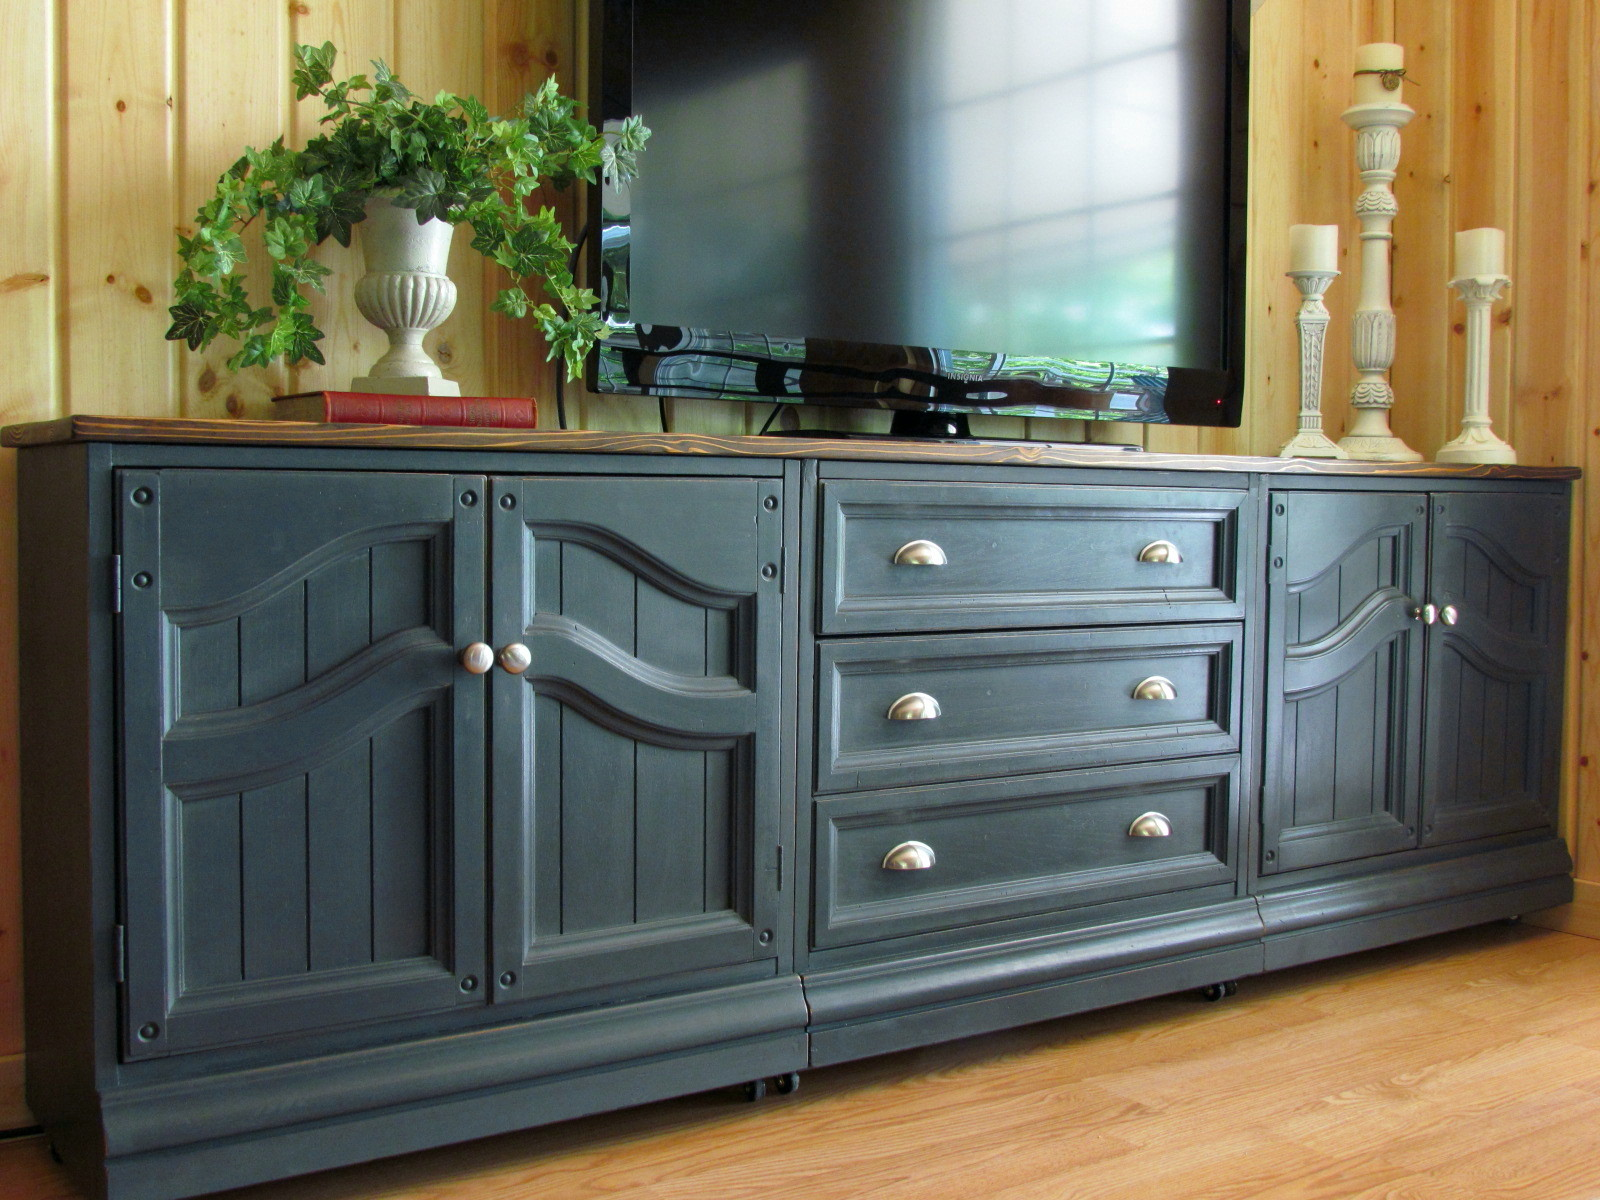 Tv Cabinet Kitchen Wildwood Creek Favorite Projects From 2011